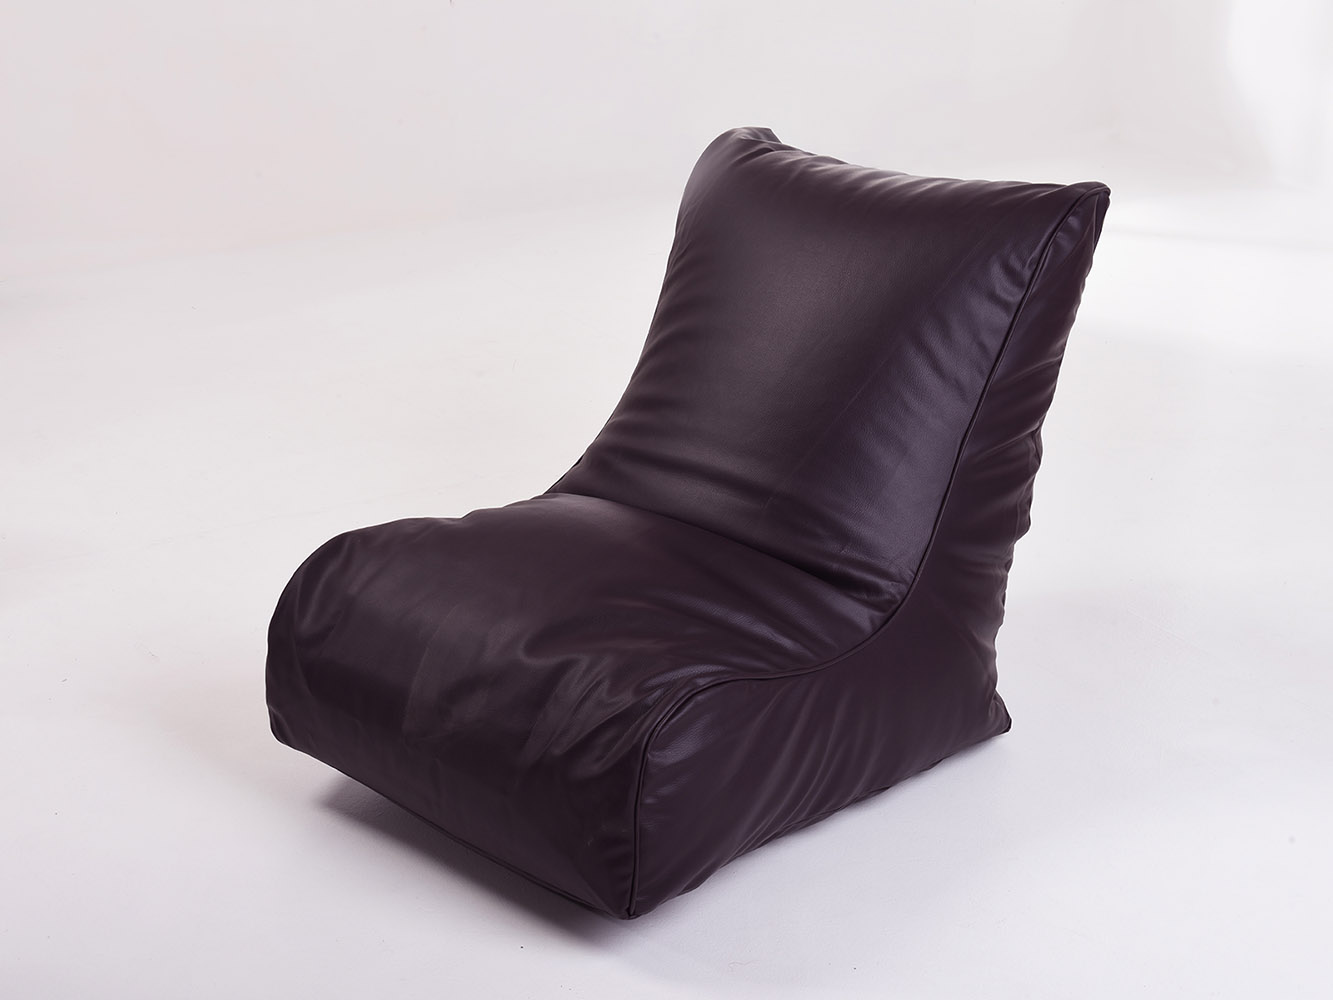 leather look gaming chair bean bag in aubergine. Black Bedroom Furniture Sets. Home Design Ideas